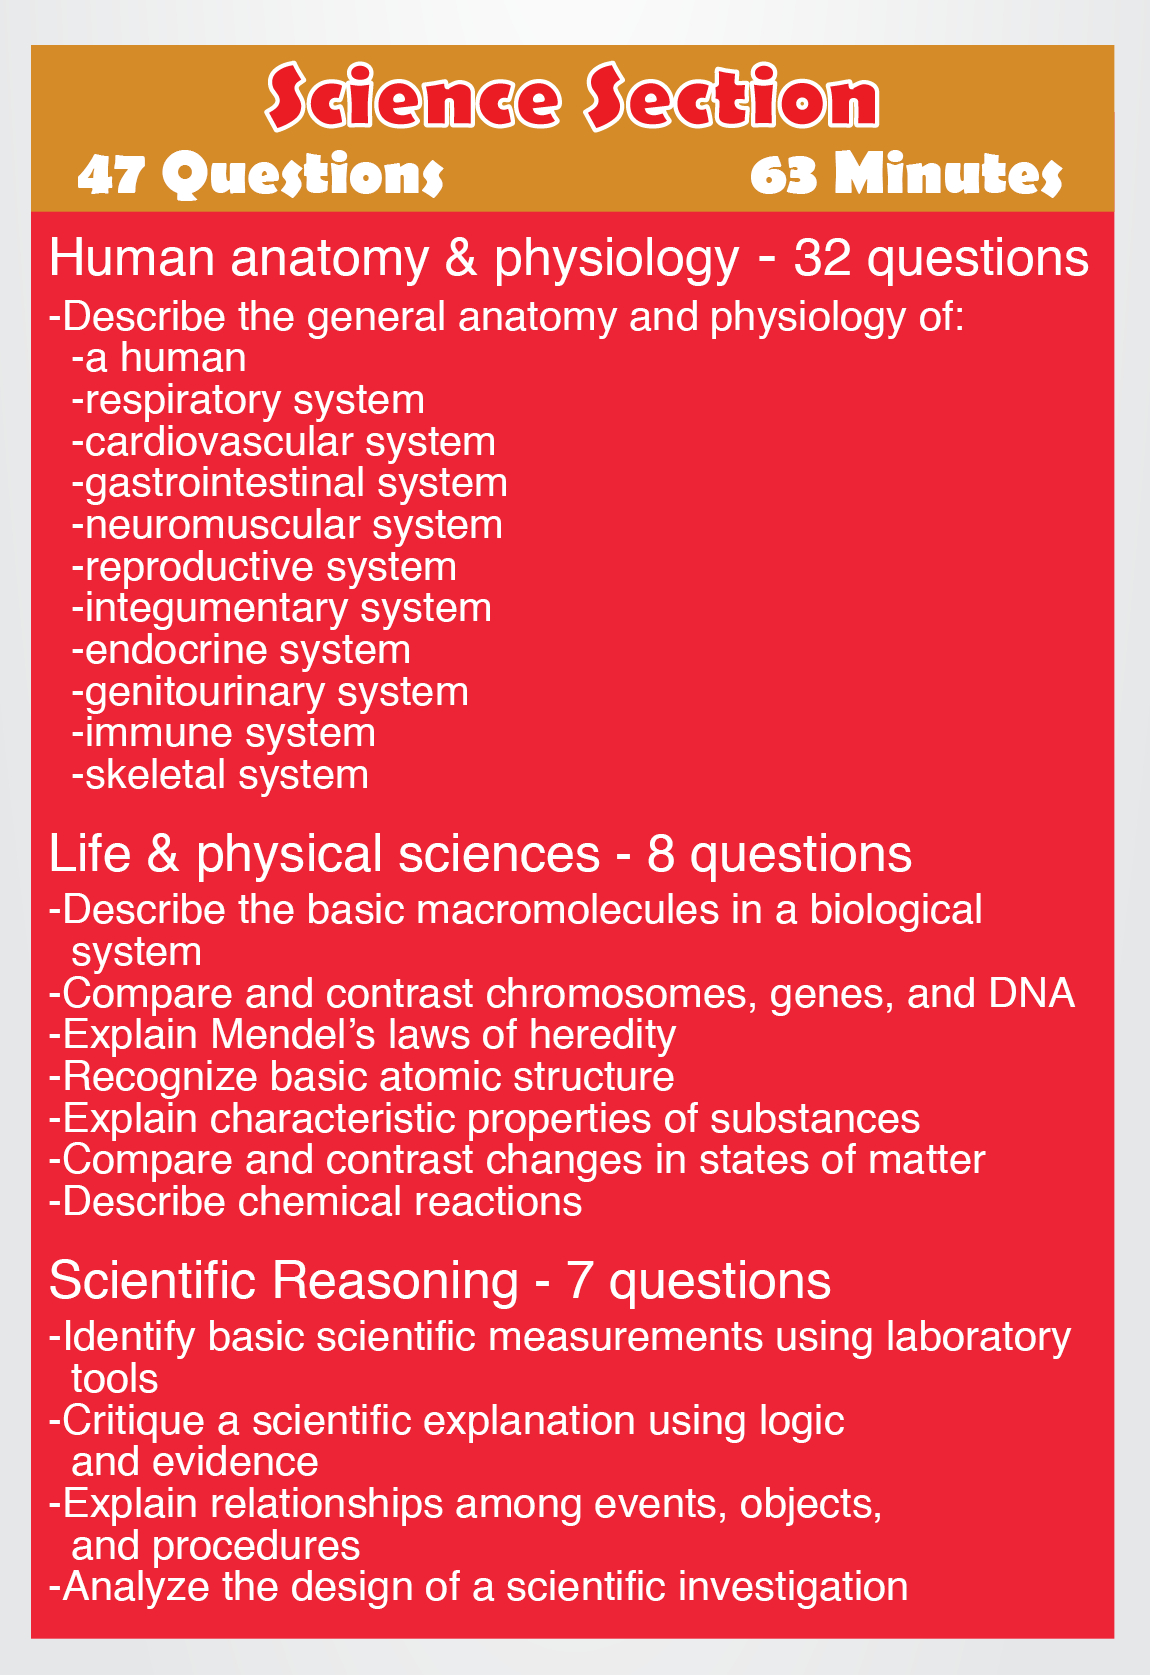 Teas Science - Content Areas Such As The Following: Human Anatomy - Free Printable Teas Study Guide